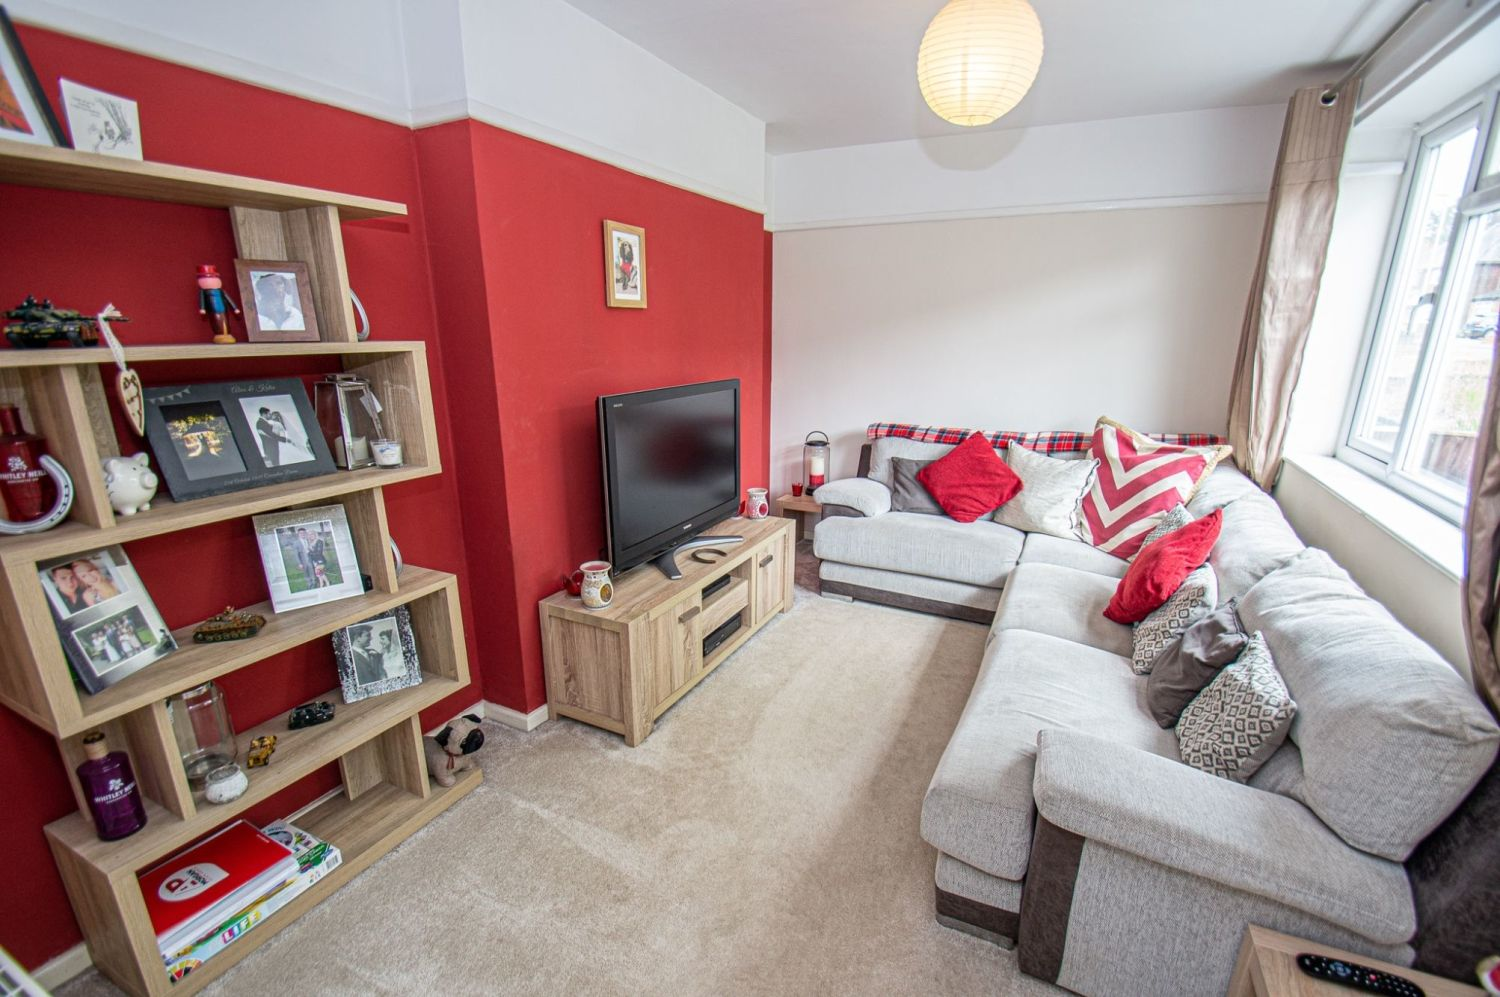 3 bed semi-detached for sale in Gauden Road, Wollescote  - Property Image 2